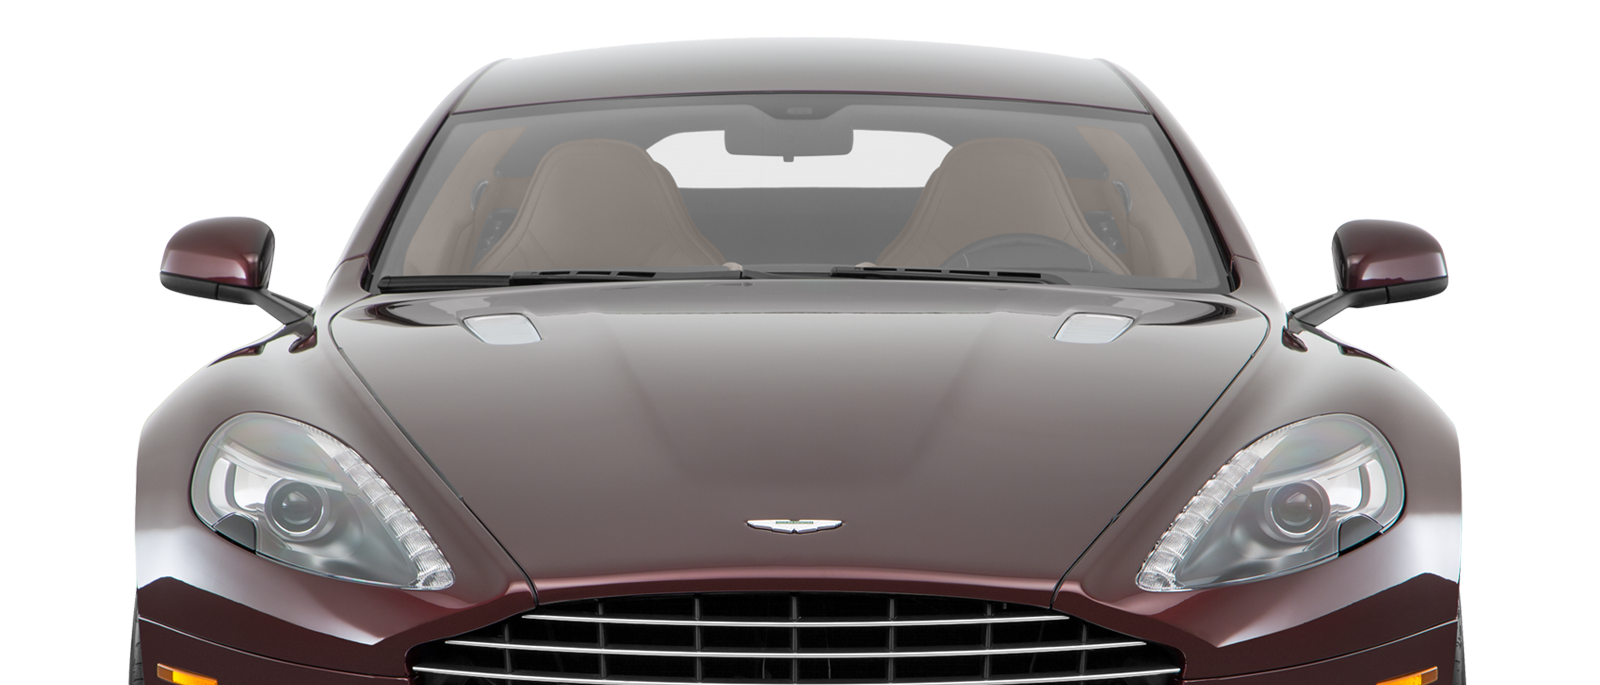 aston martin rapide s car rental exotic car collection. Black Bedroom Furniture Sets. Home Design Ideas